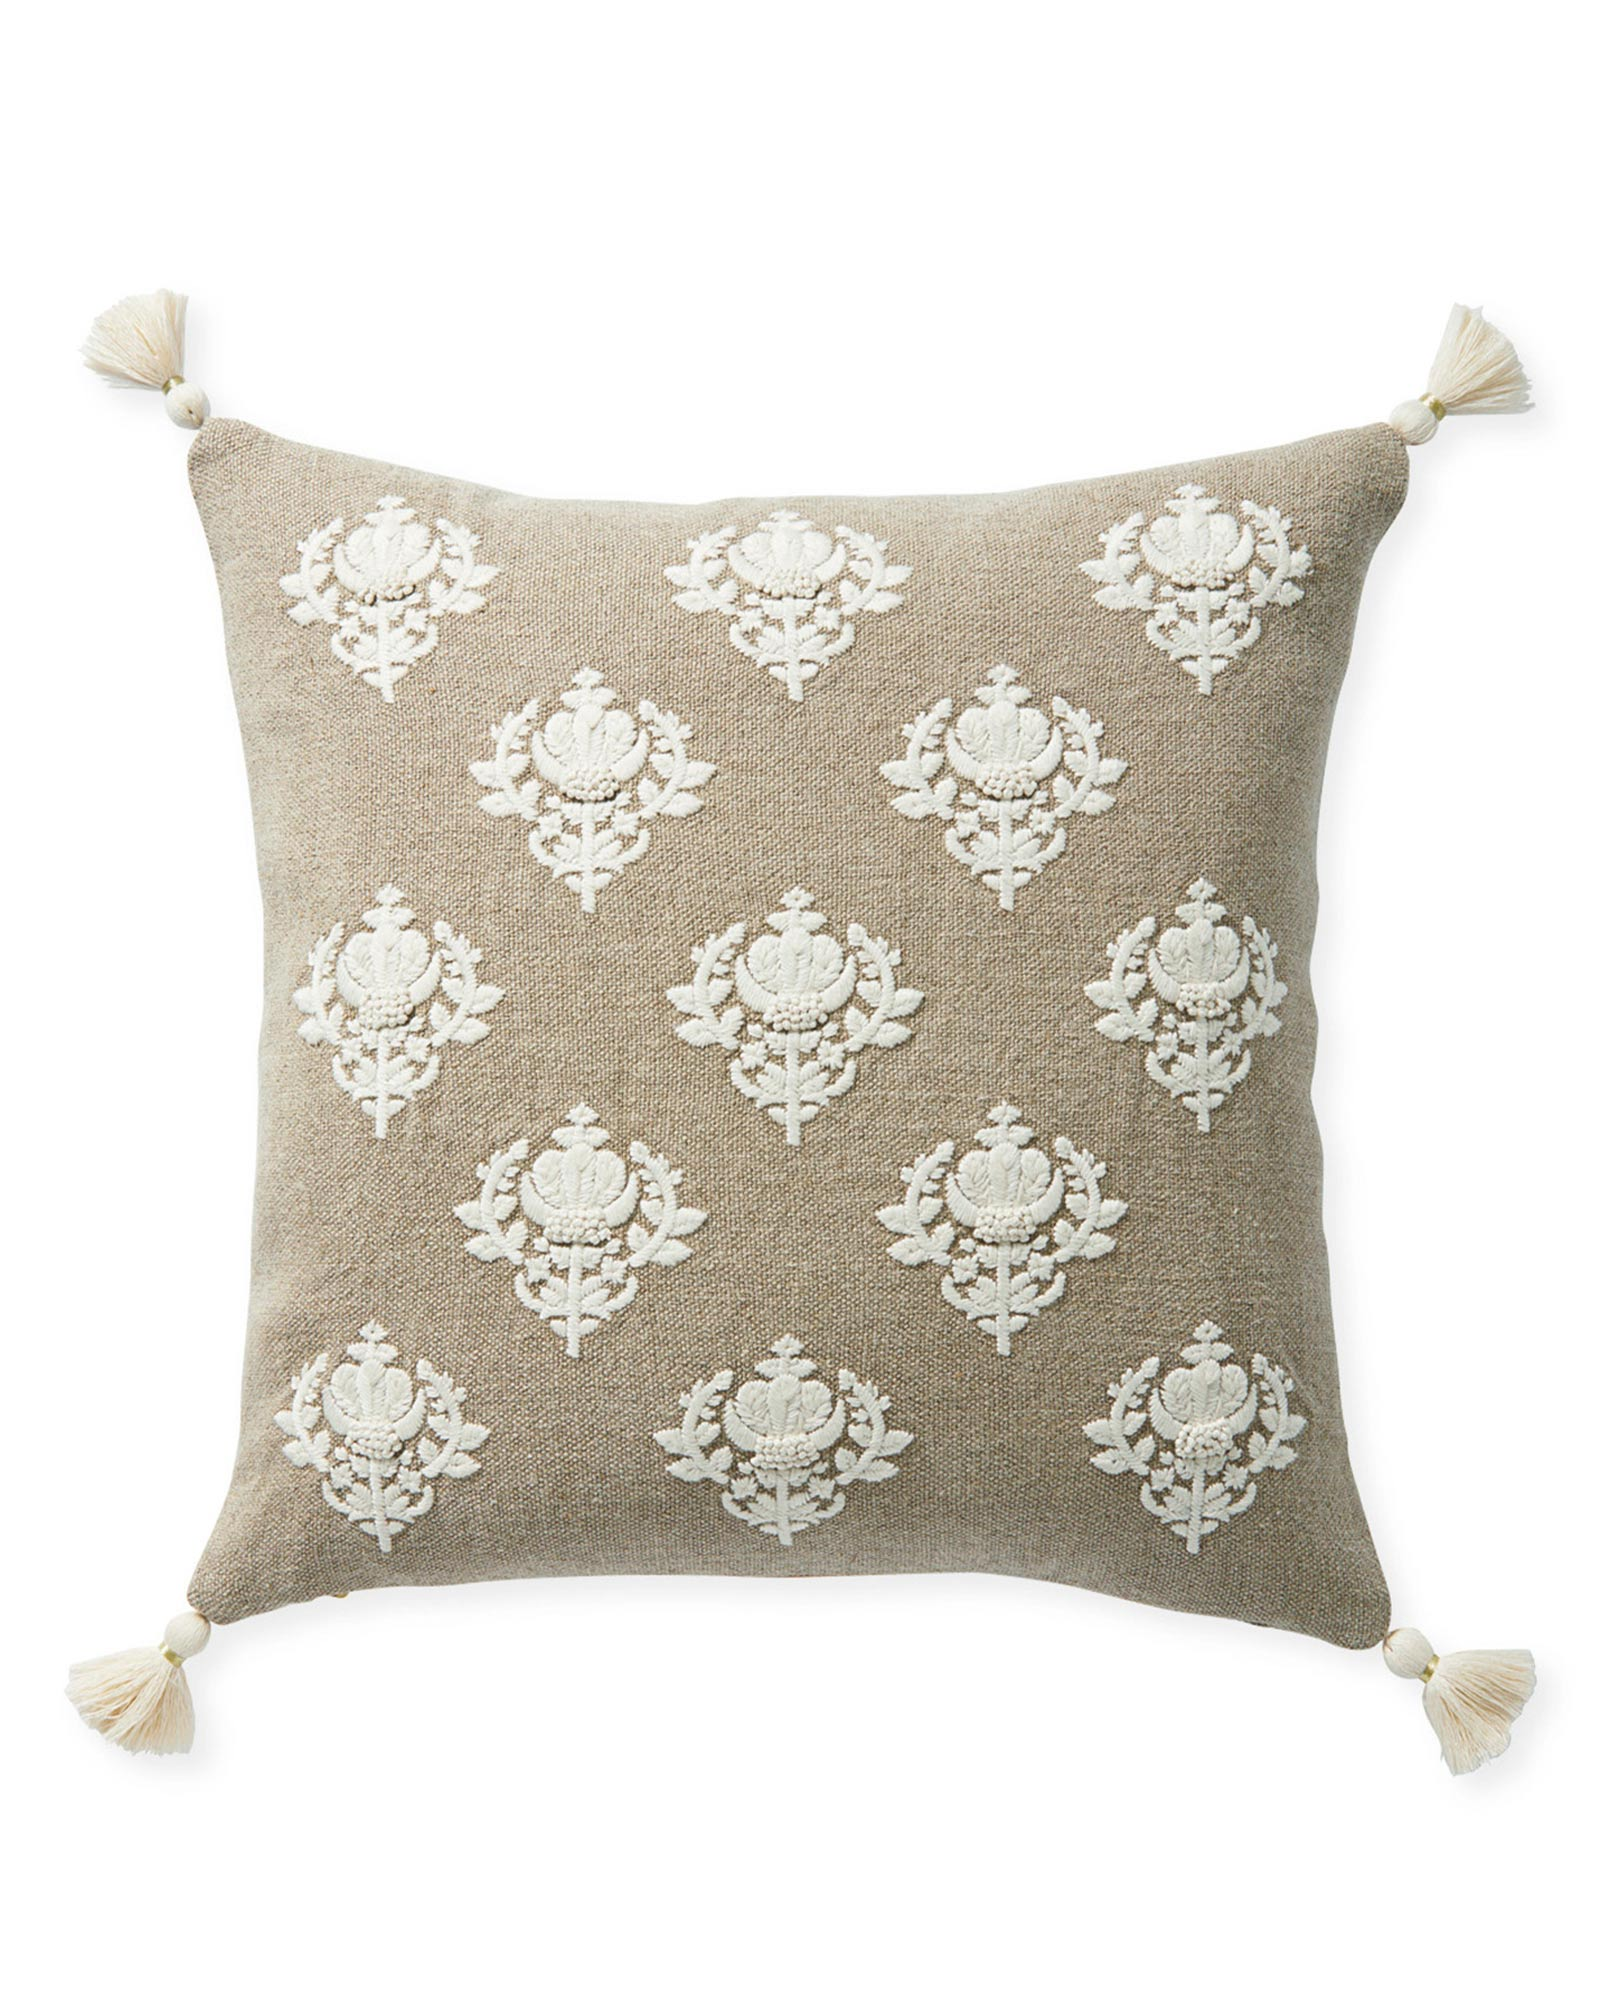 Kemp Pillow Cover, Flax